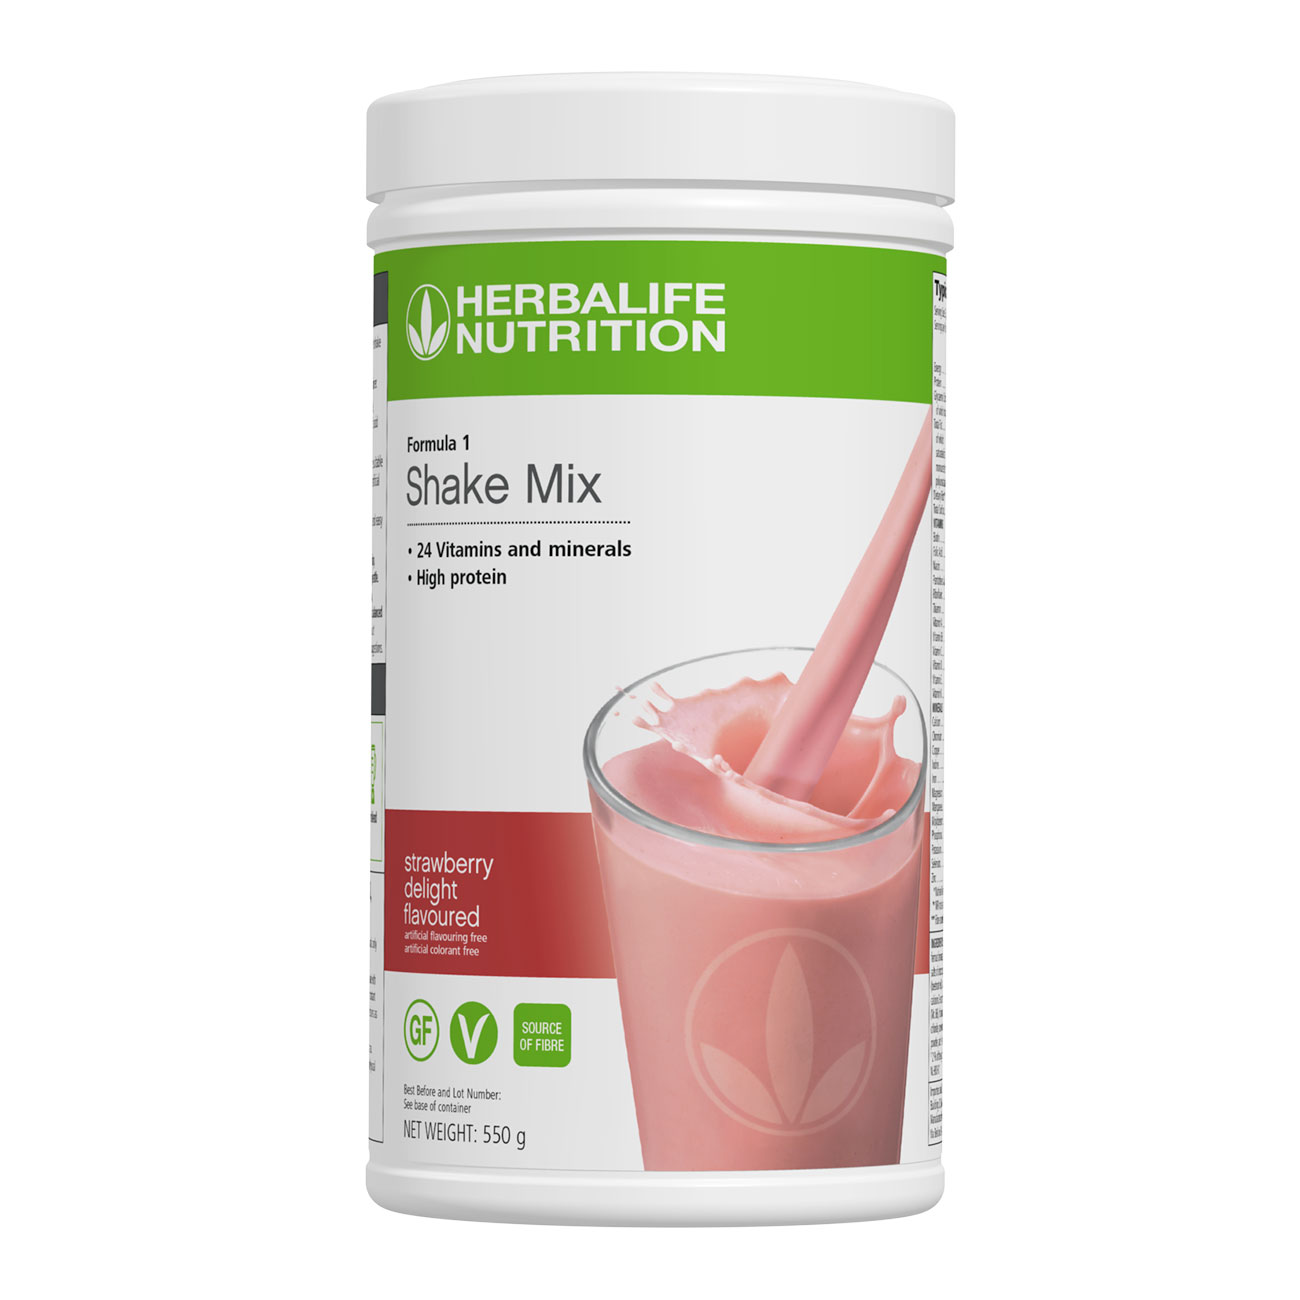 Formula 1 Shake Mix Strawberry Delight Flavoured product shot